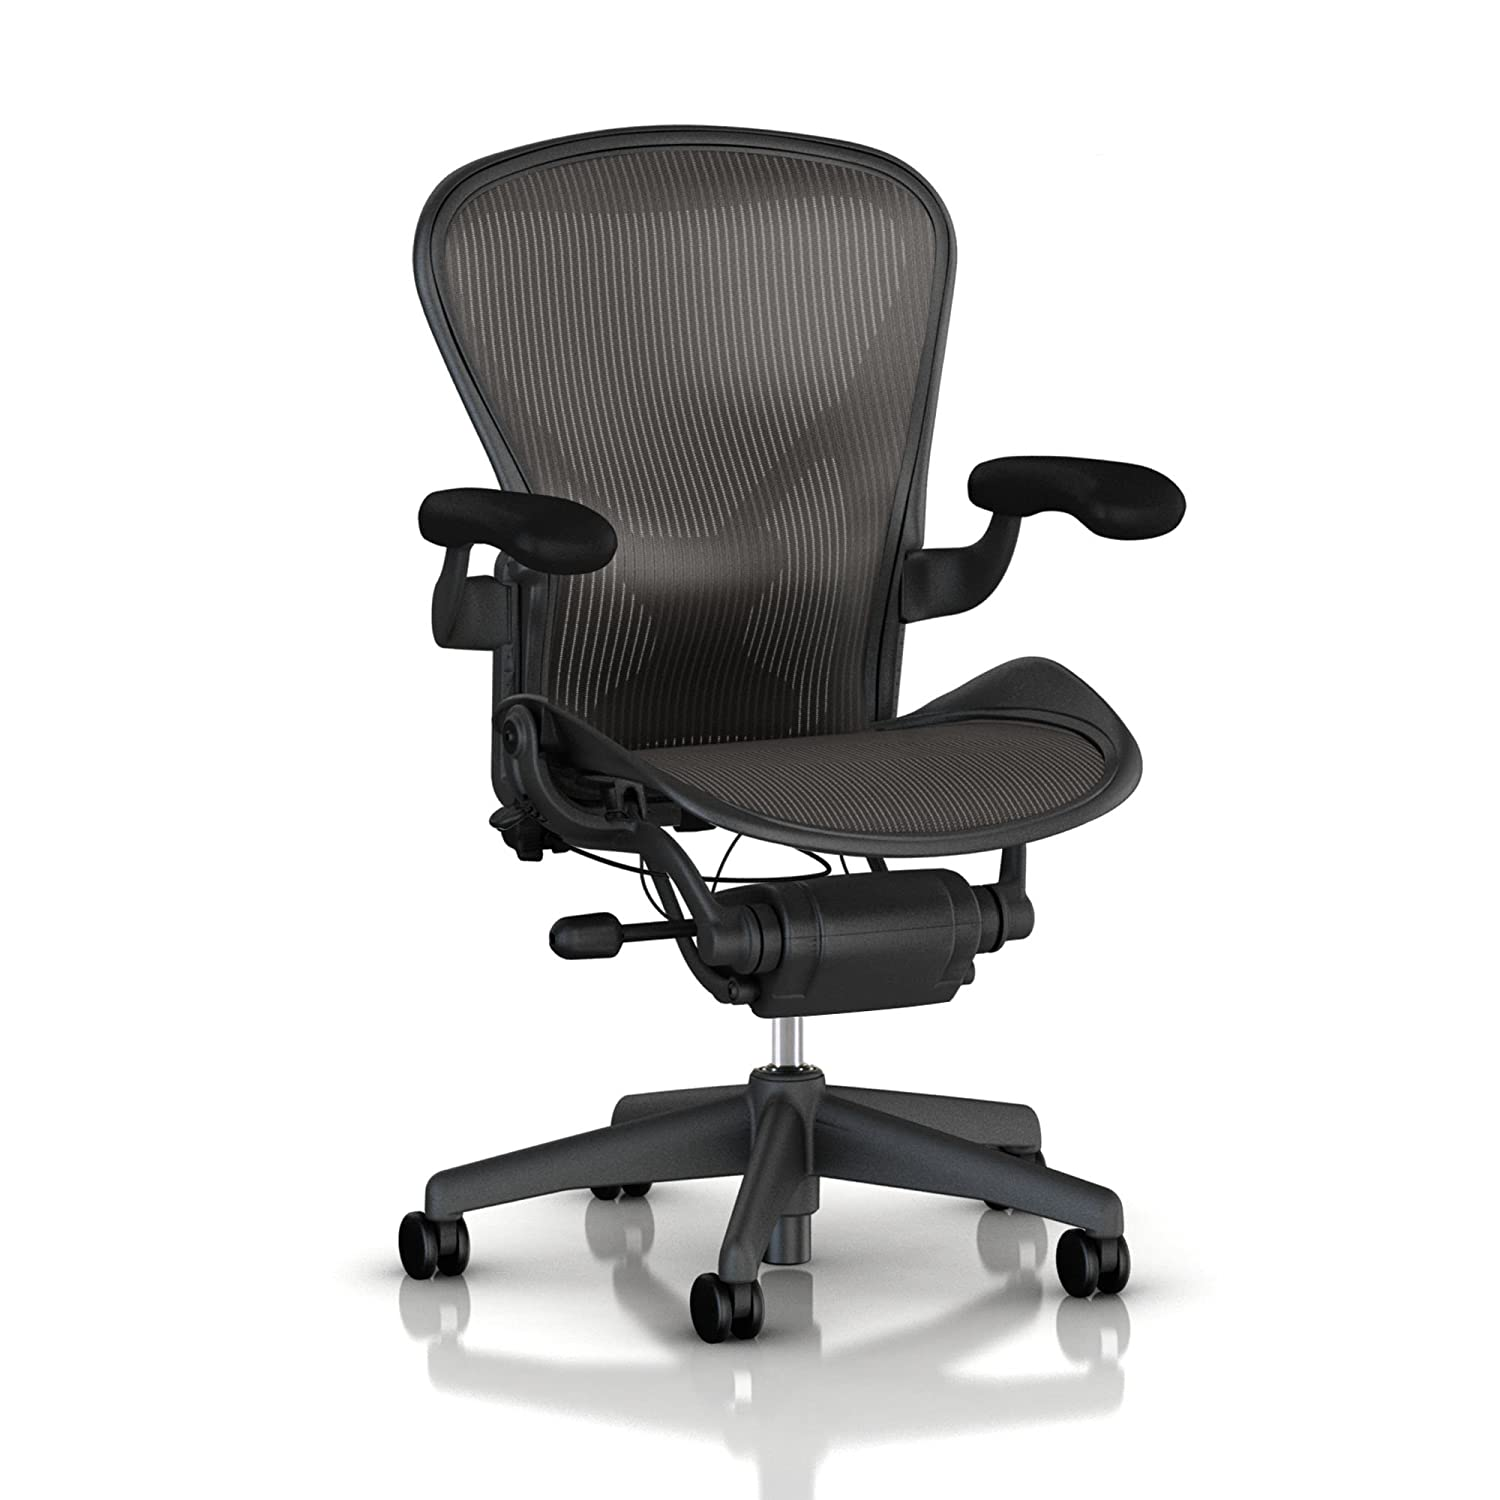 Best computer chair for gaming - The Aeron Chair By Herman Miller Is Another Amazing Solution For Computer Gamers Looking For Comfortable Seating This Chair Is Made Using High Tech Mesh